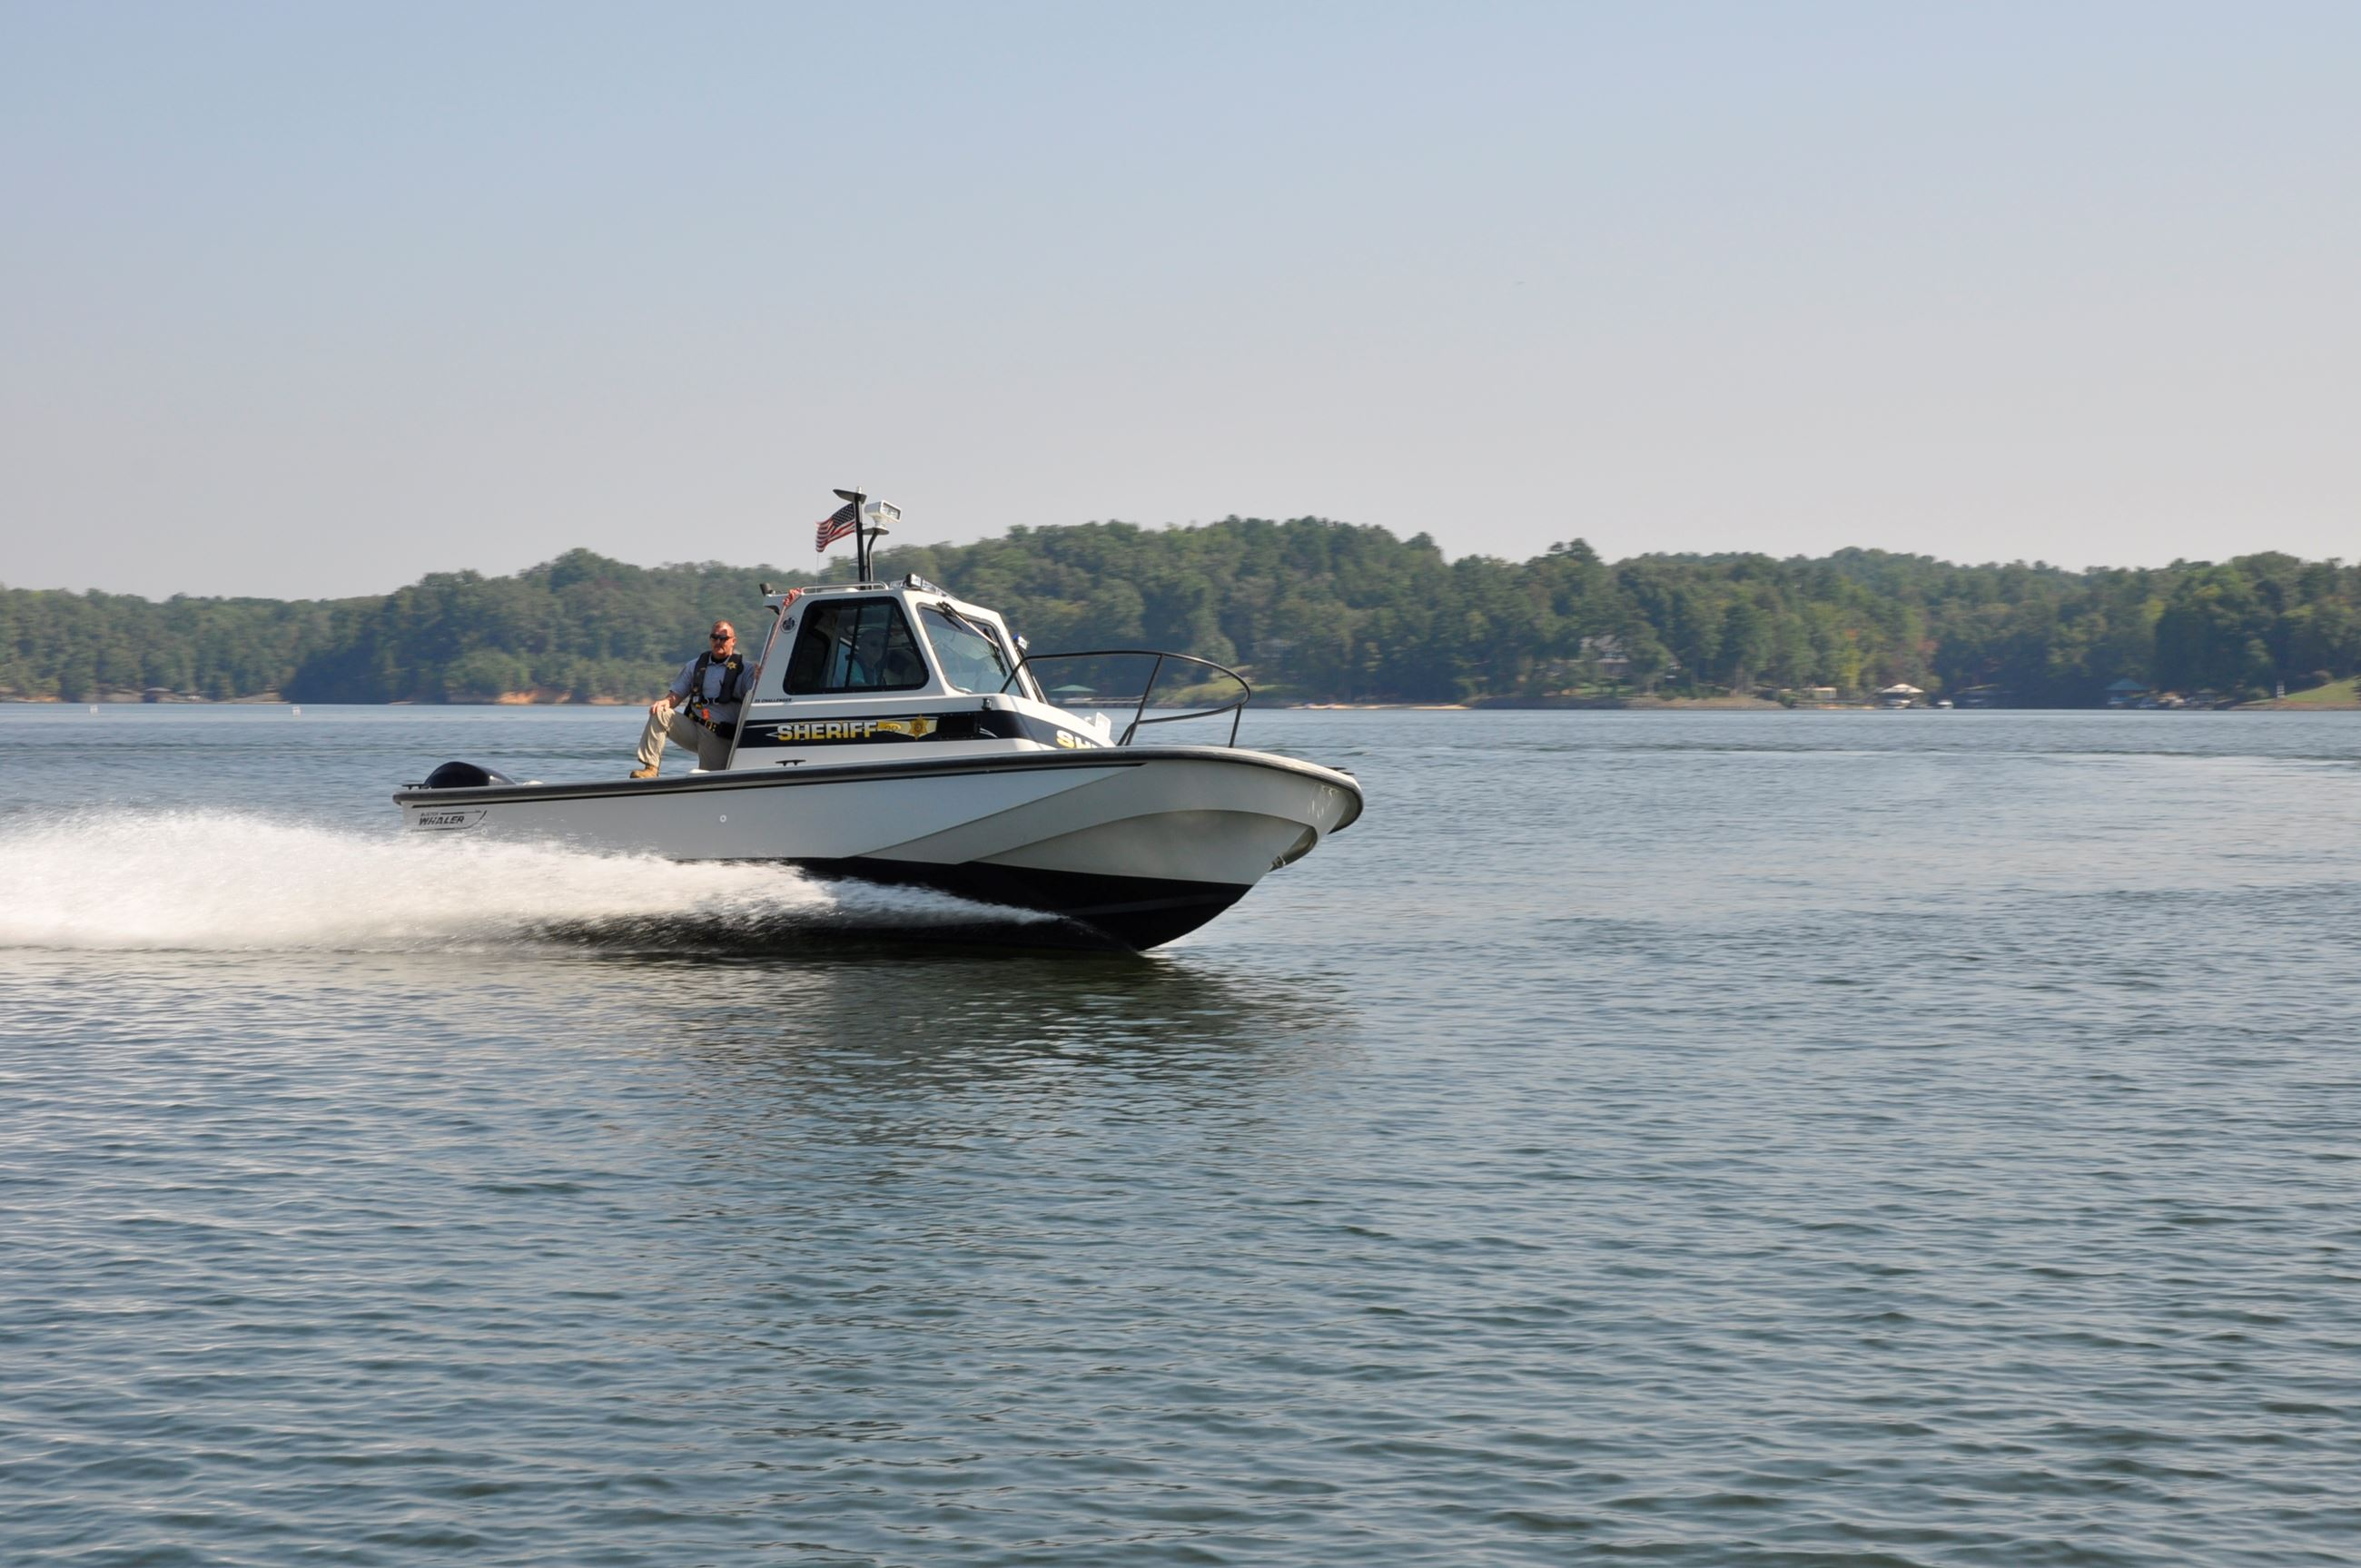 The Lake Enforcement Unit boat at high speed patrolling Lake Wylie